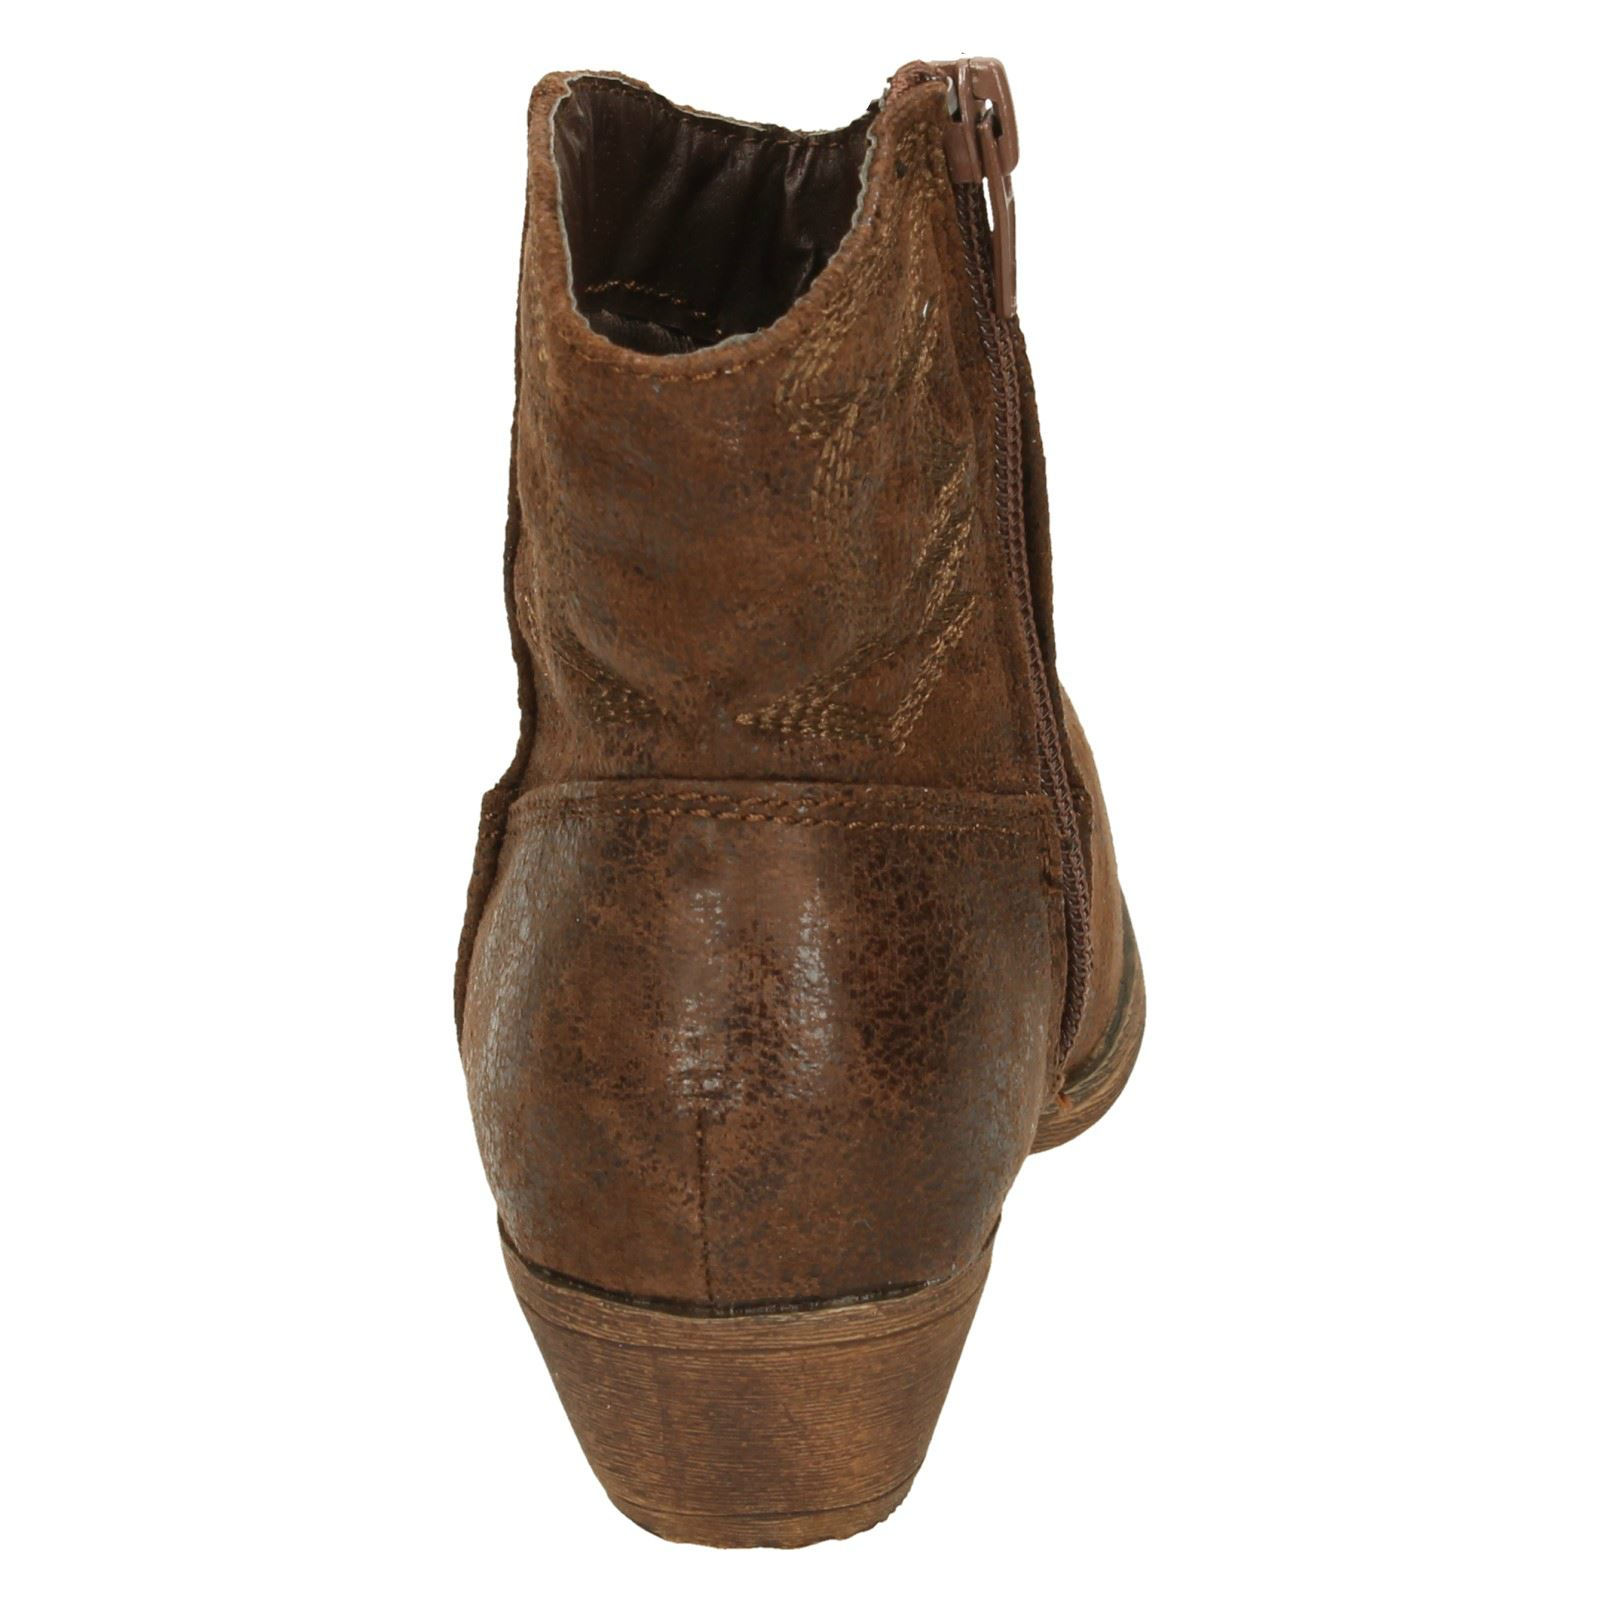 H5017 GIRLS CUTIE ZIP UP ROUND TOE LOW HEEL COWBOY STYLE CASUAL ANKLE BOOTS